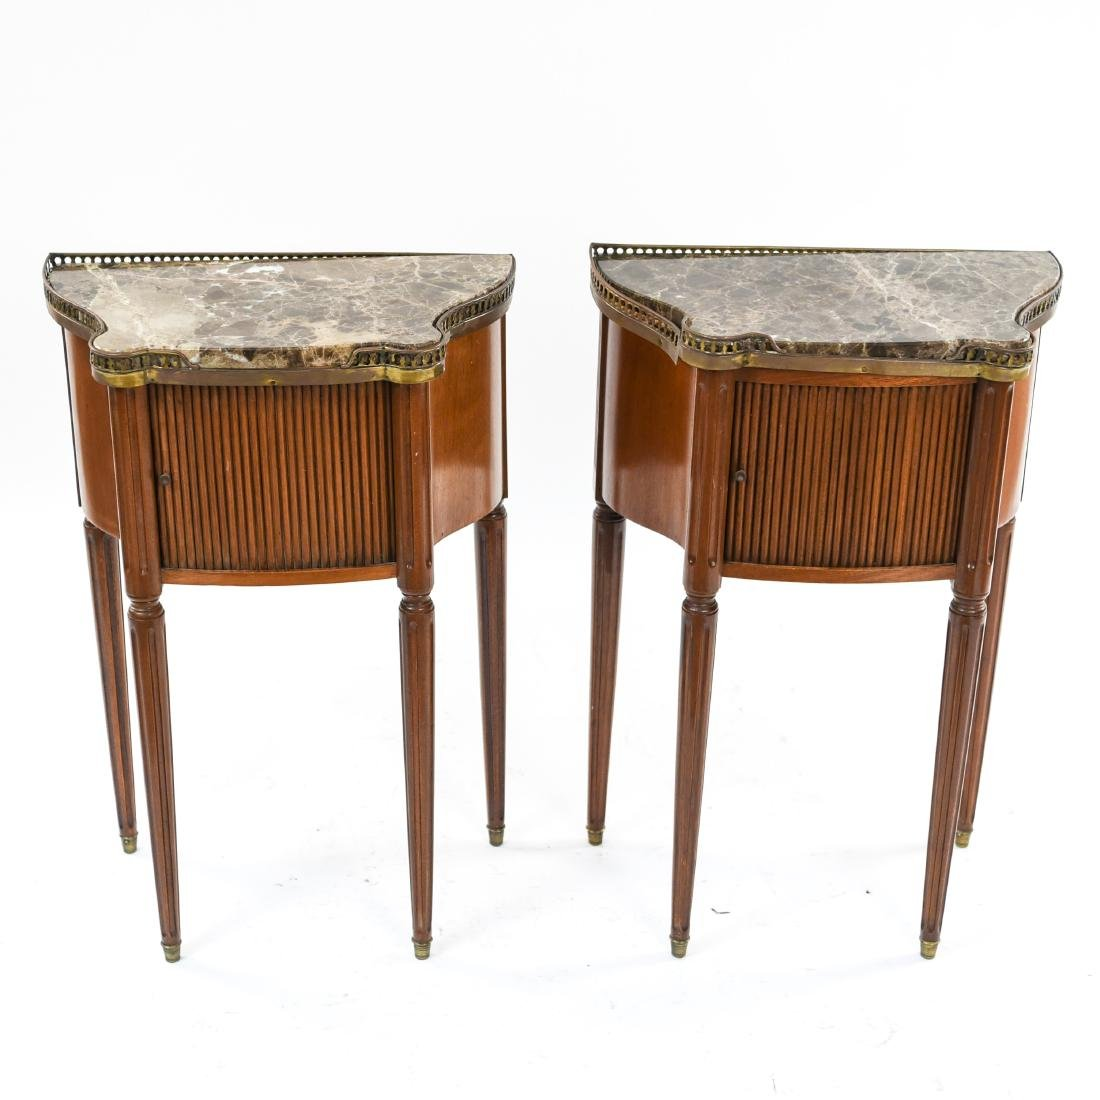 PAIR OF FRENCH MARBLE TOP SIDE TABLES - 2